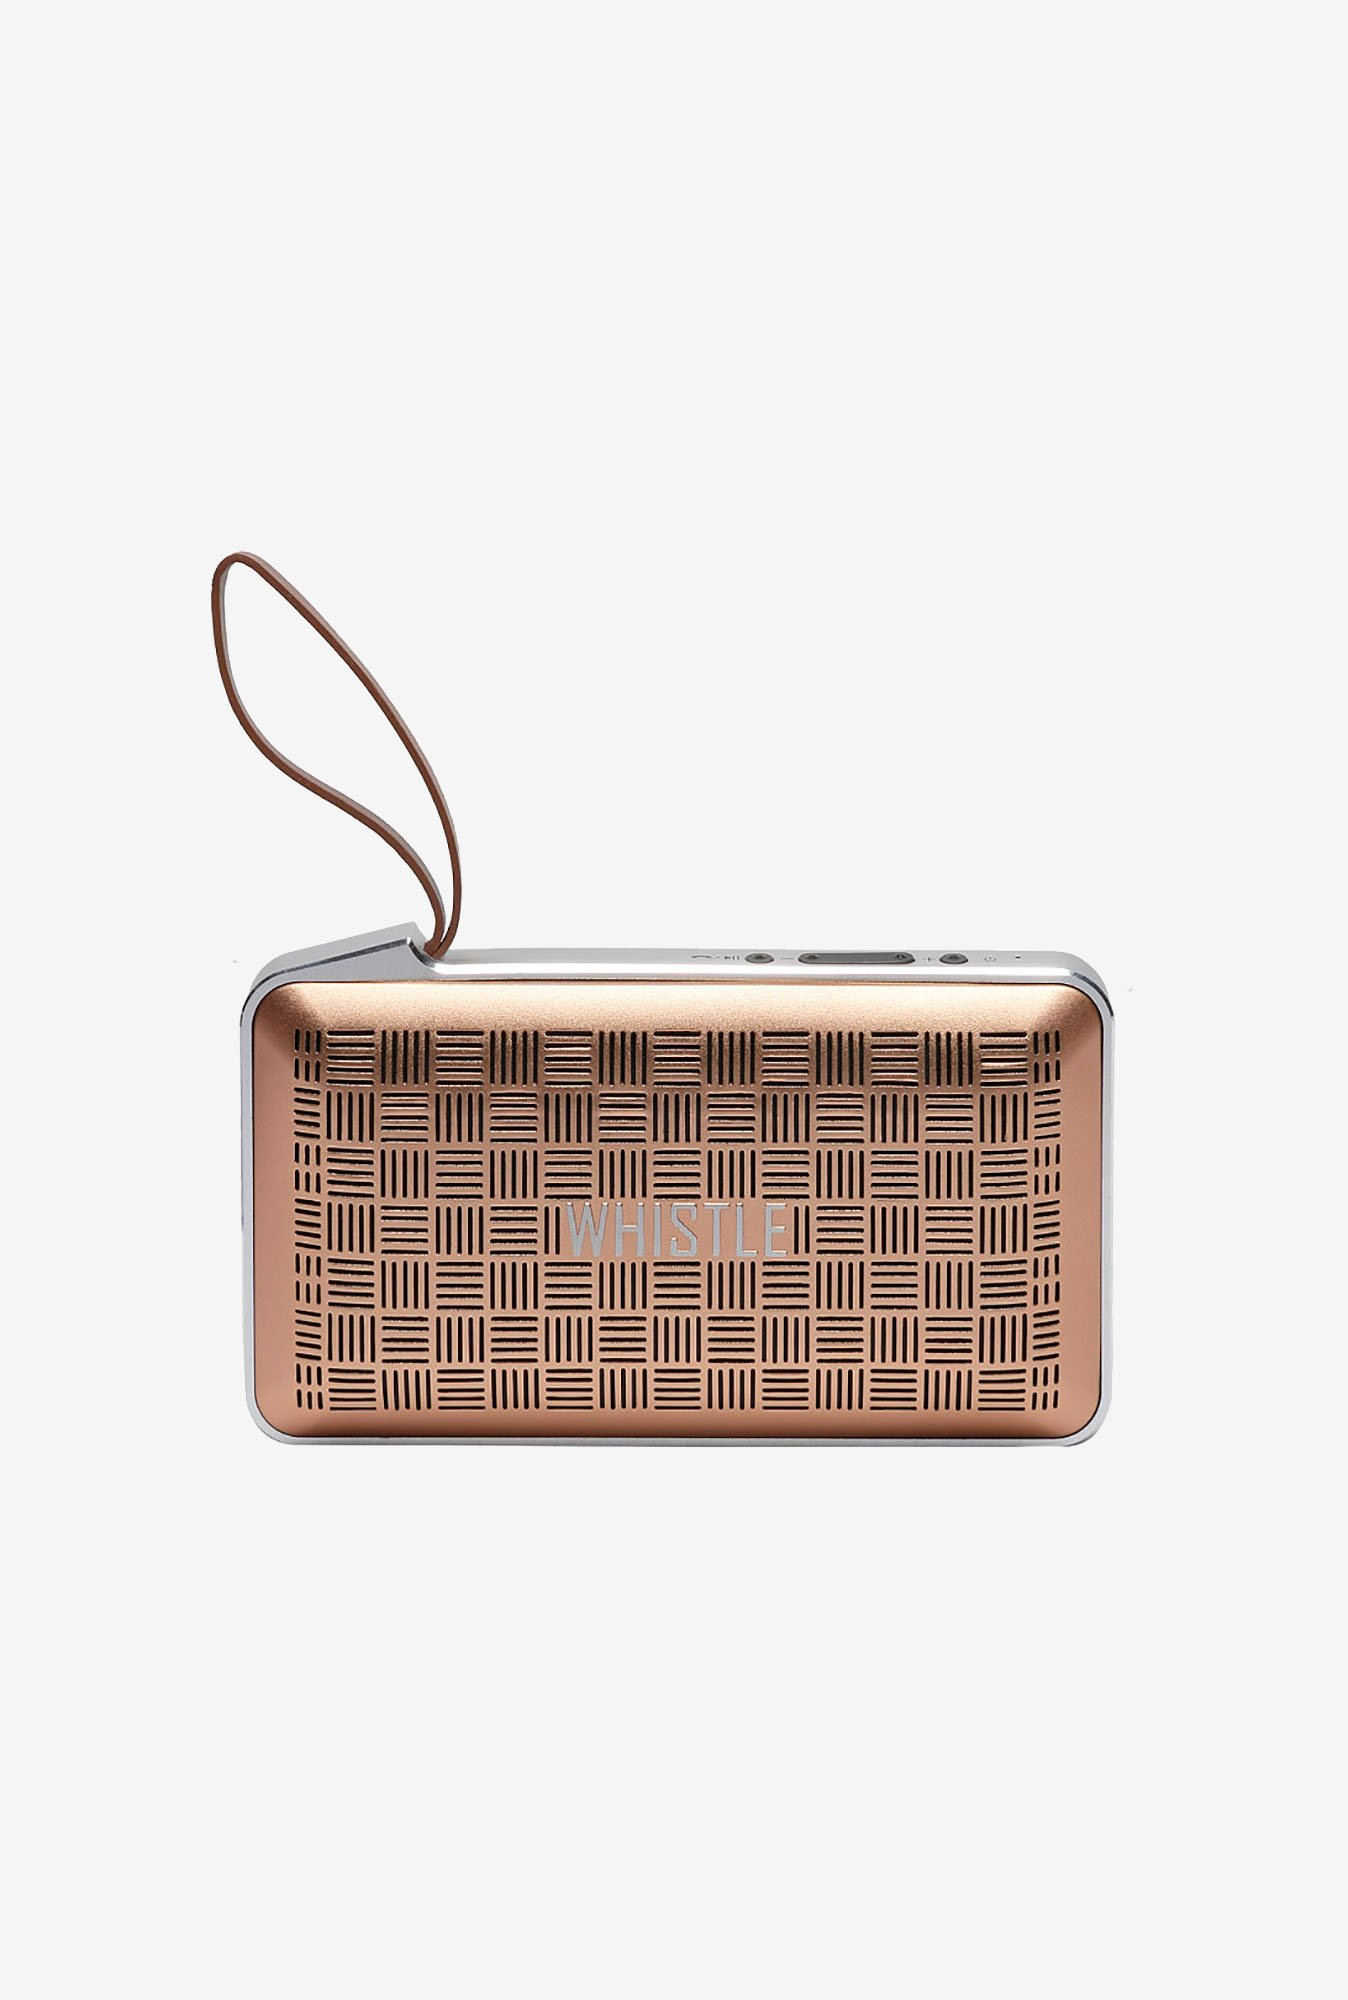 Whistle Smart Portable Bluetooth Speaker (Gold)